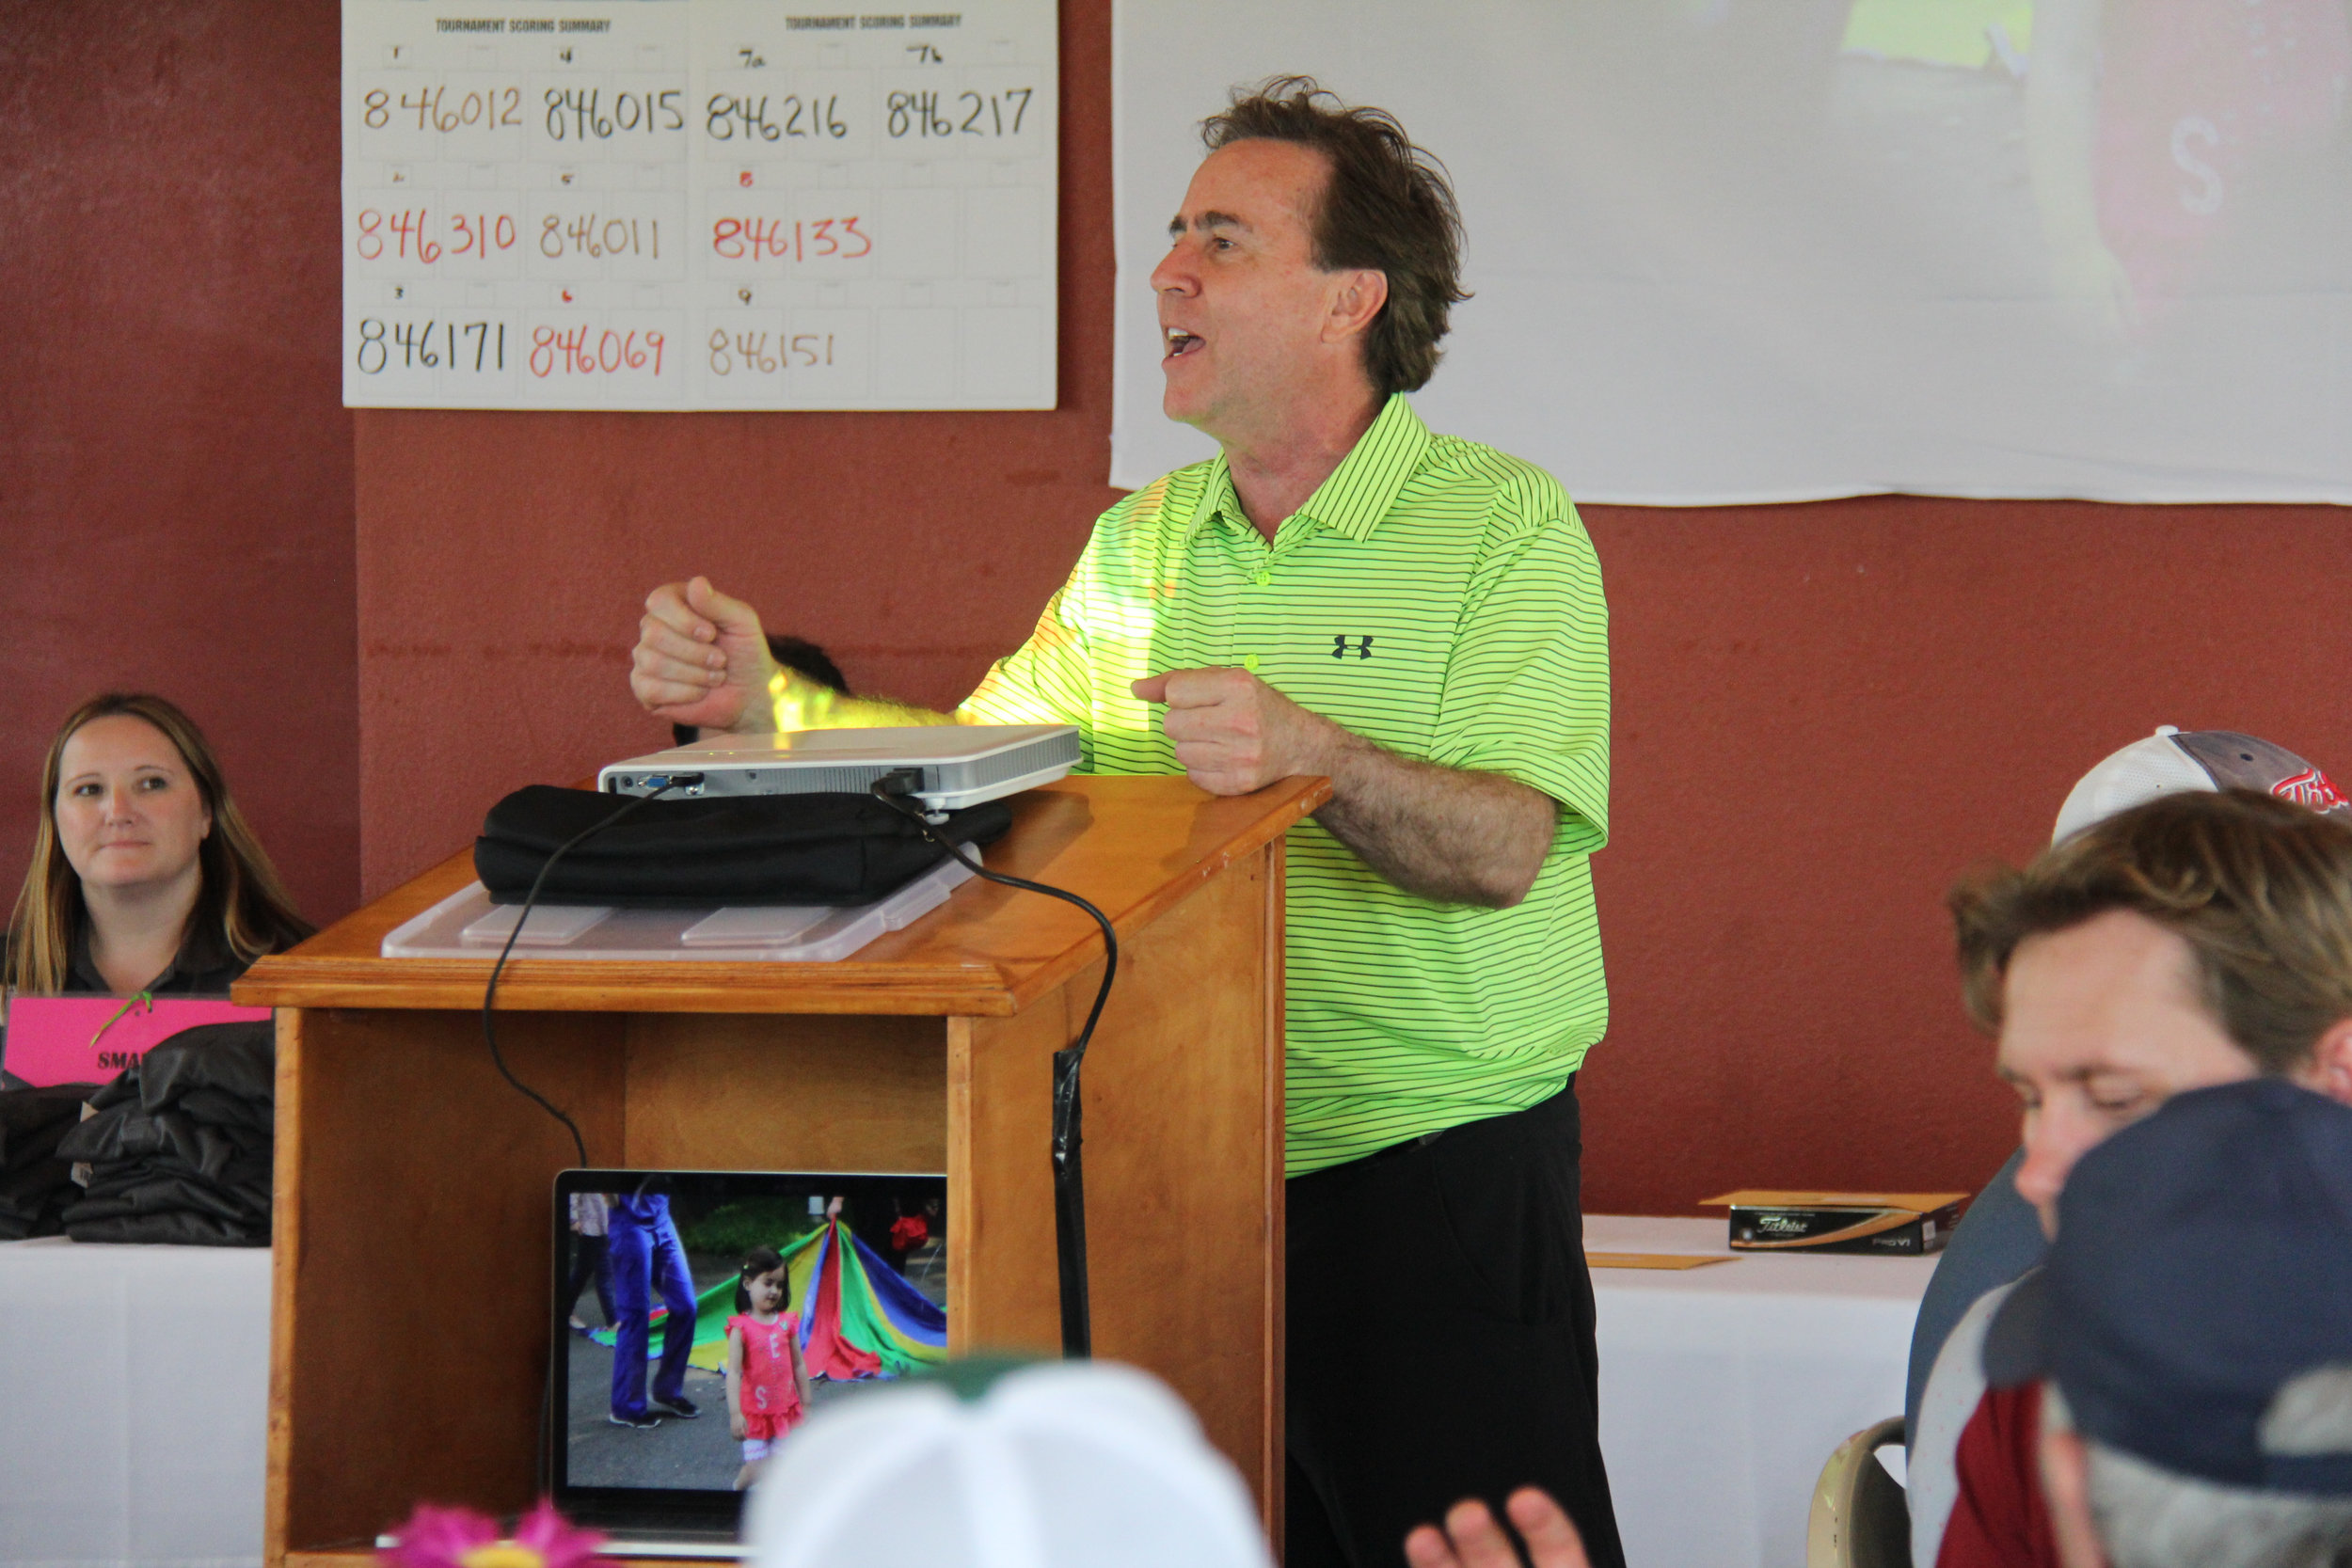 Dr. Kevin Seidler sharing an update on ServingHIM and the construction of our Guatemala Clinic.